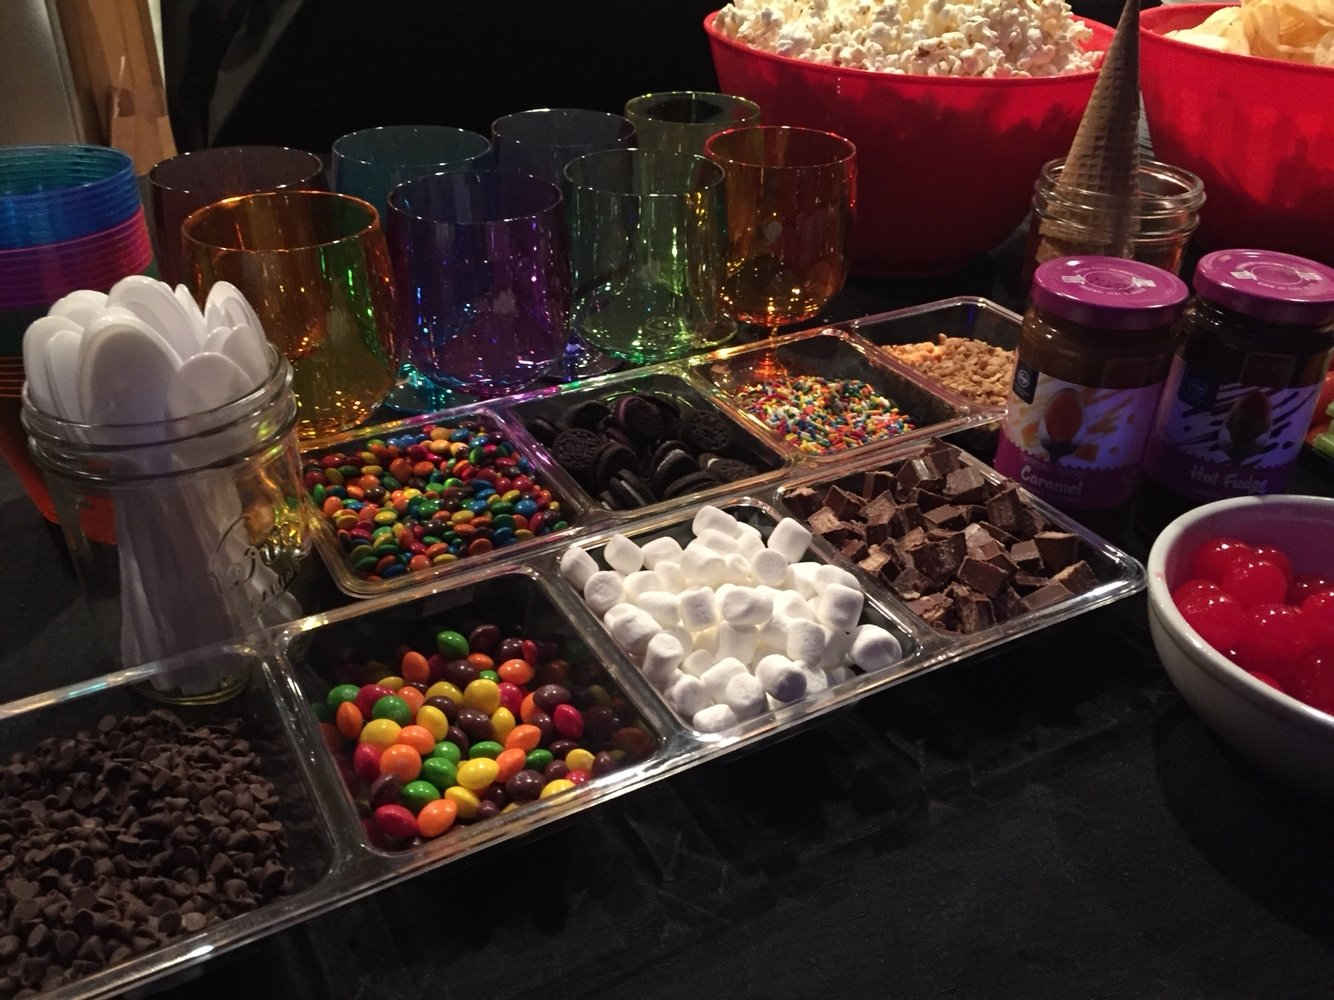 10 Attractive 18Th Birthday Party Ideas For Guys teen boy bday party glow in the dark neon blacklight sundae bar 2 2020